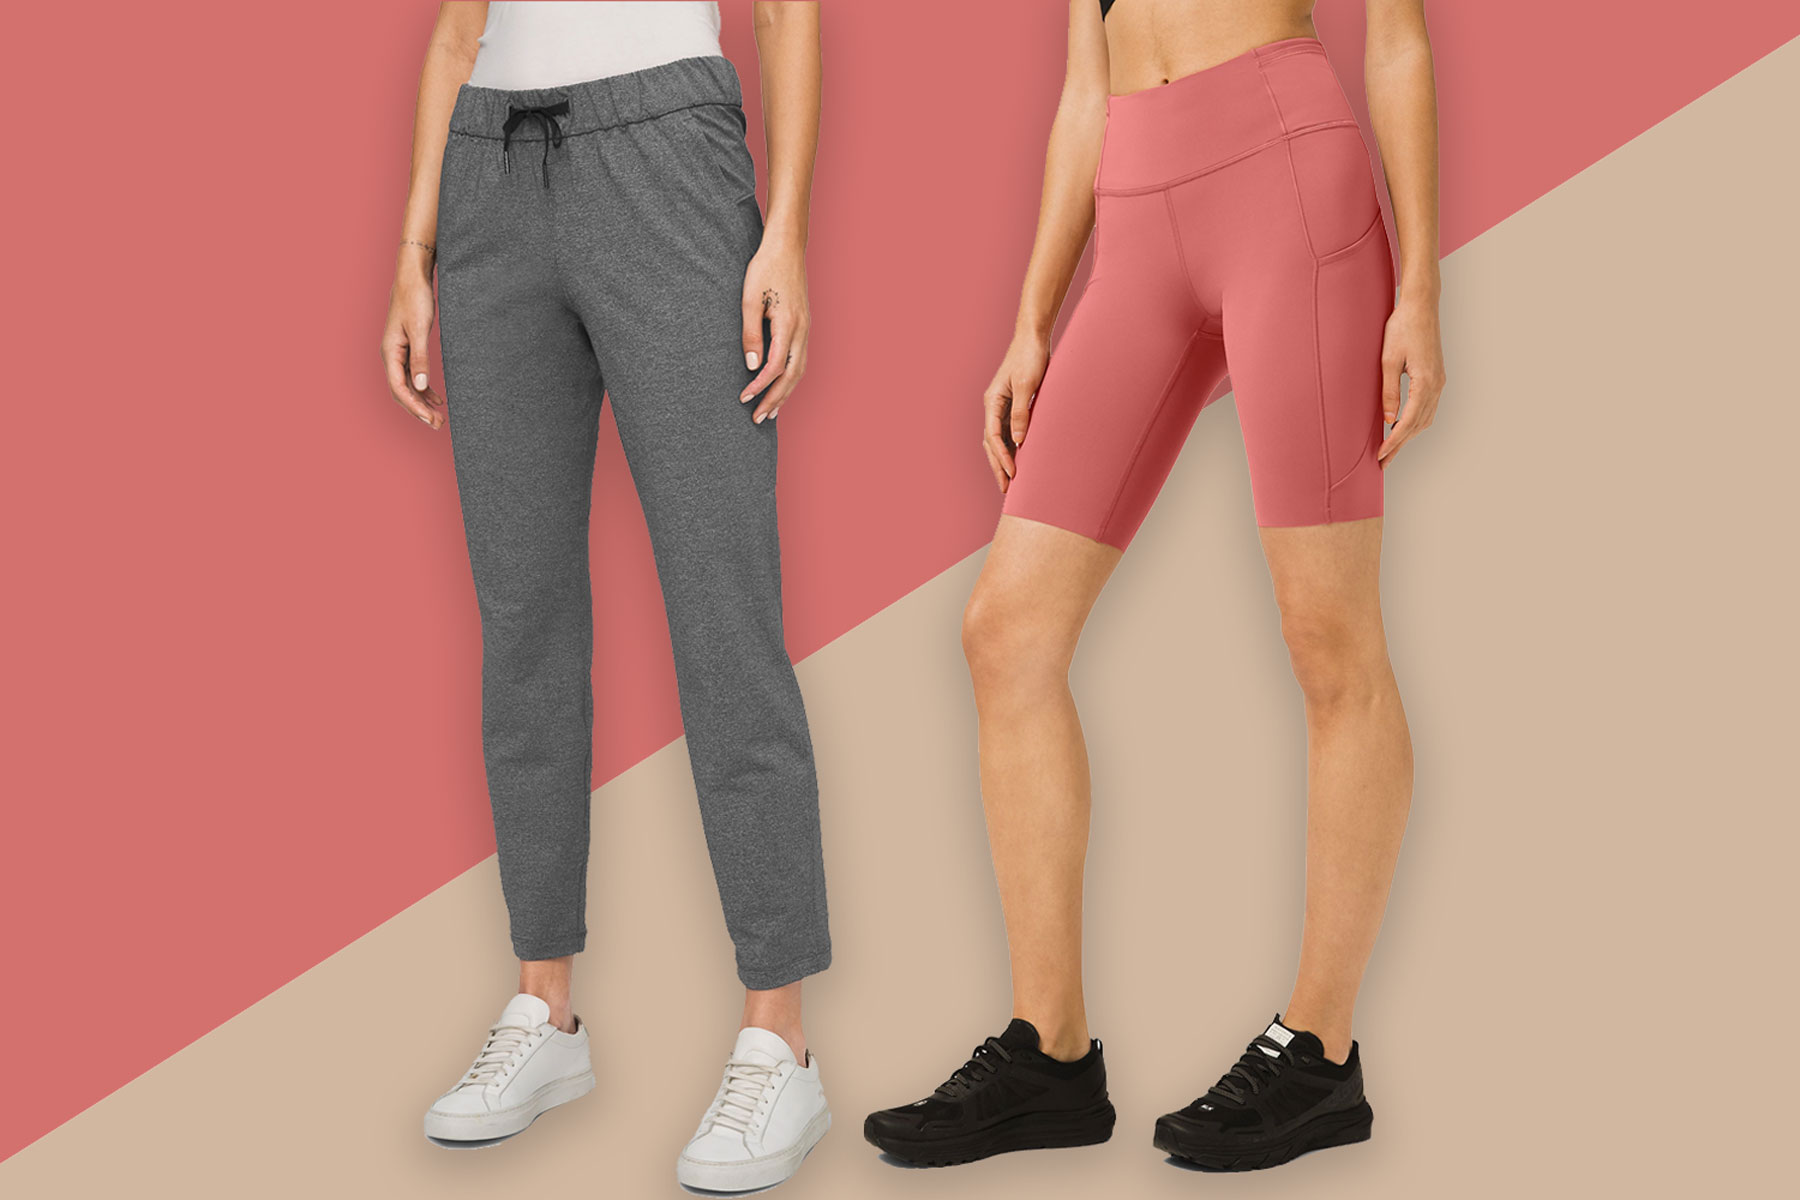 Women's grey track pants and pink bike shorts